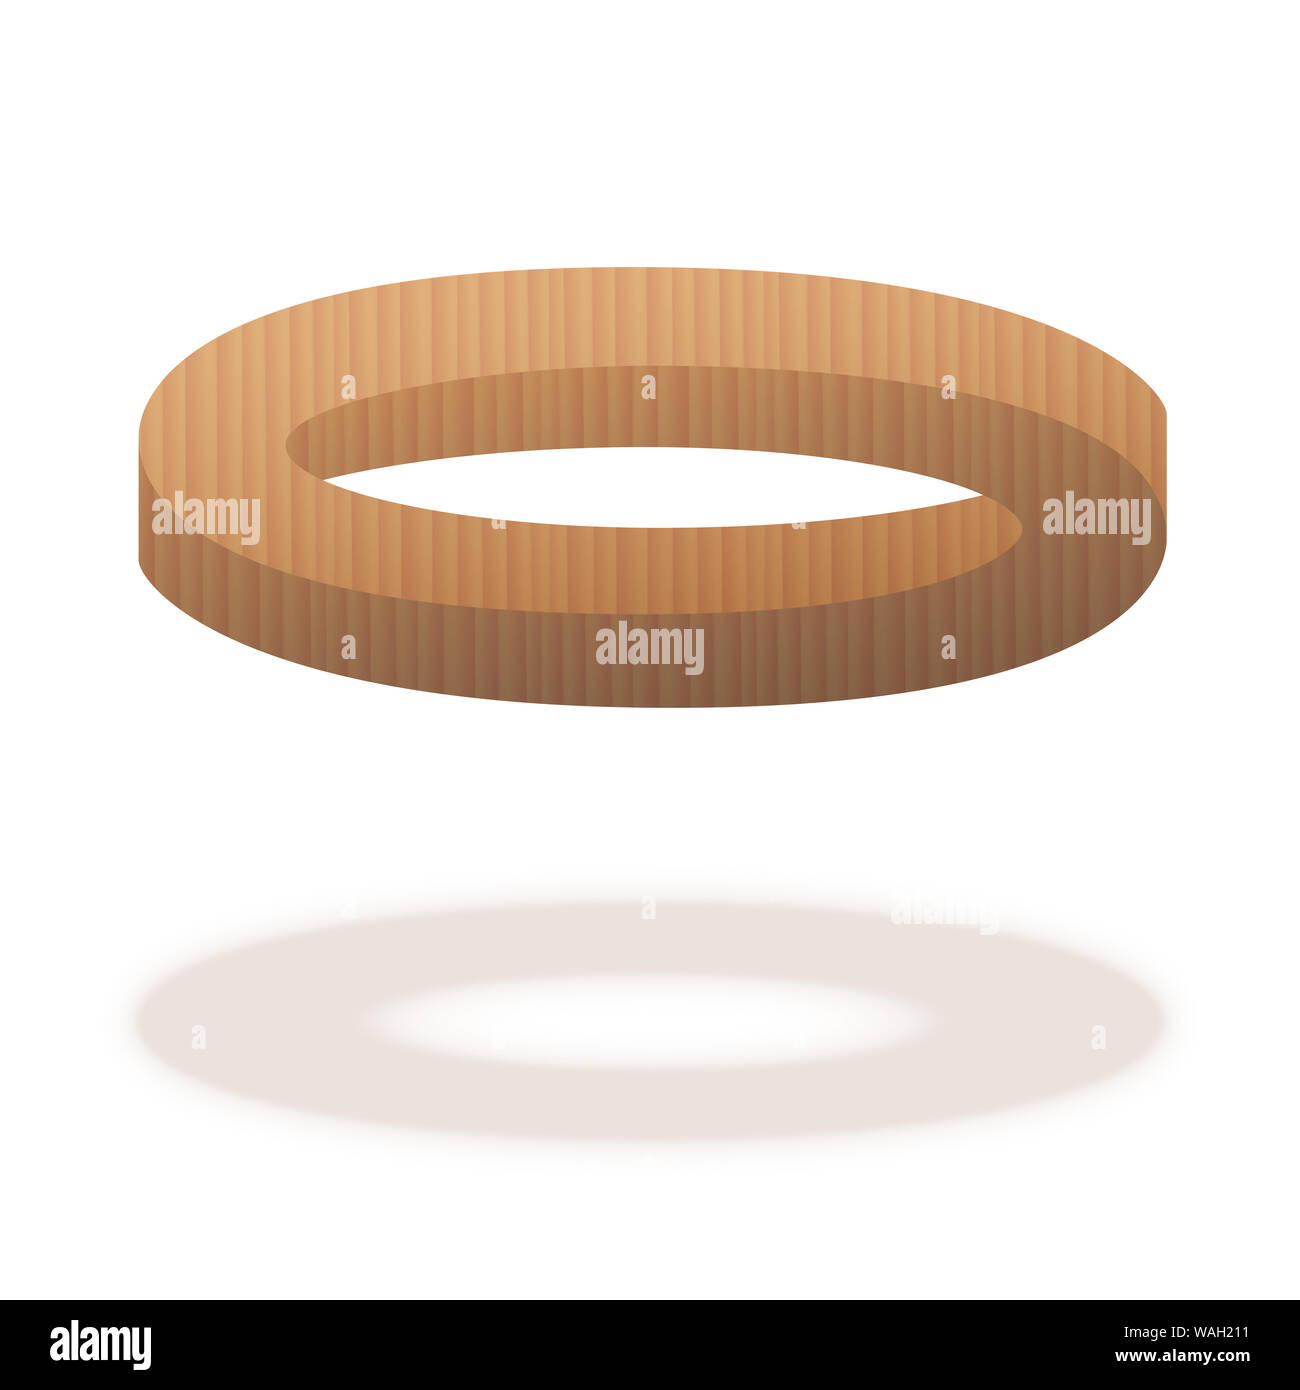 Impossible figure. Optical illusion with wooden ring. The left part is correct, the right part is correct, but both together are impossible. Stock Photo